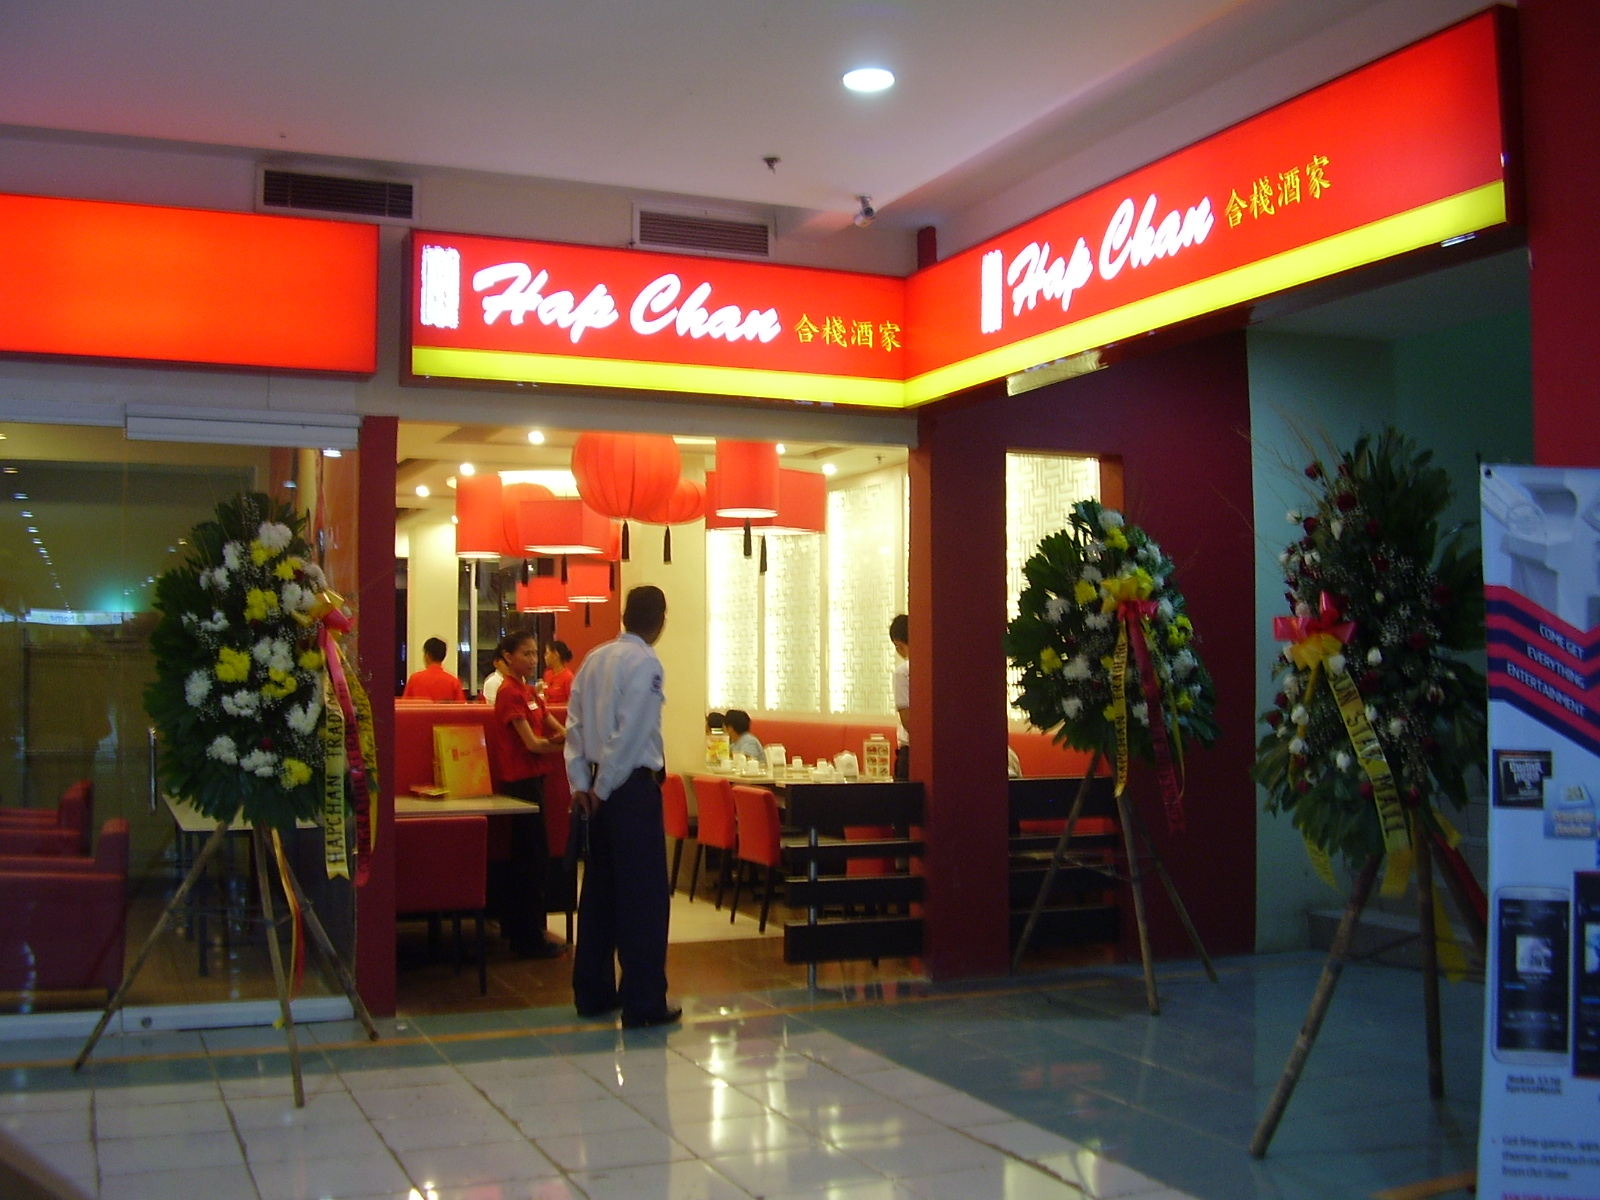 Laguna Life Hap Chan Is Now Open At The Sunstar Mall